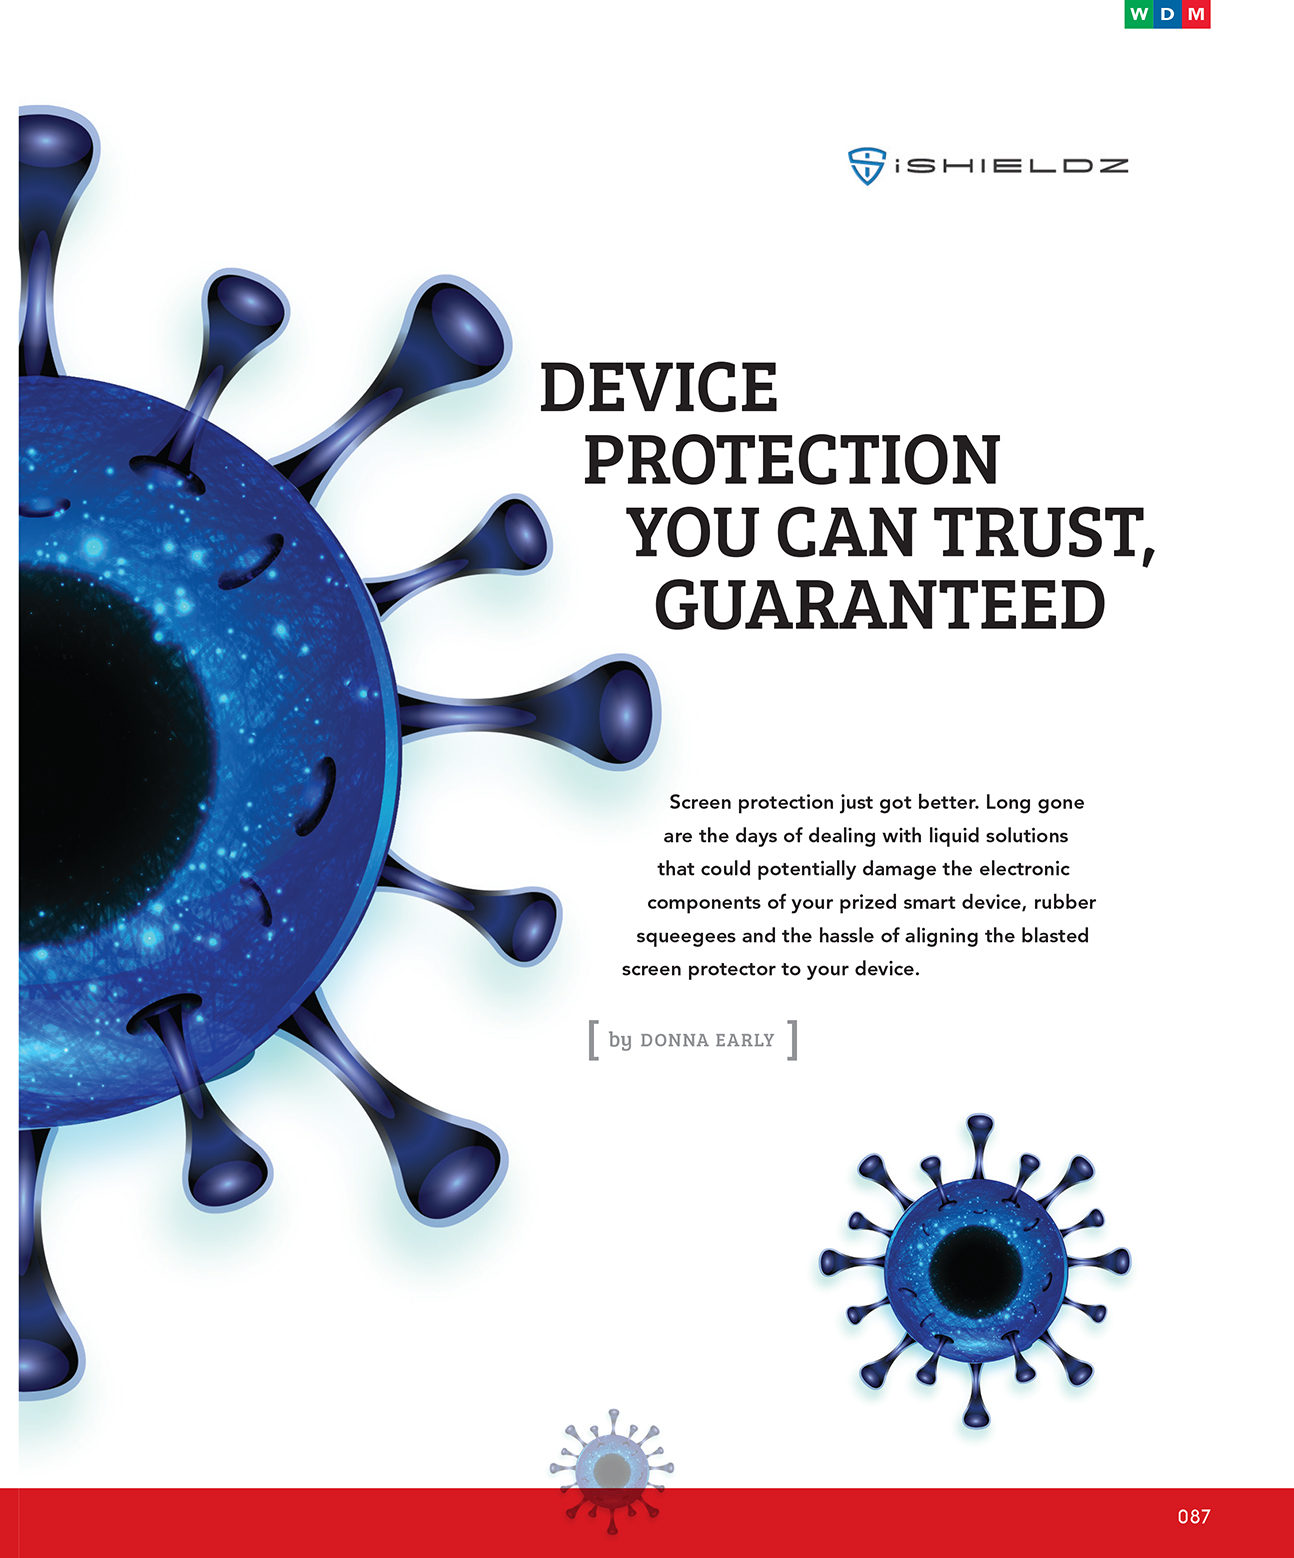 Device Protection You Can Trust